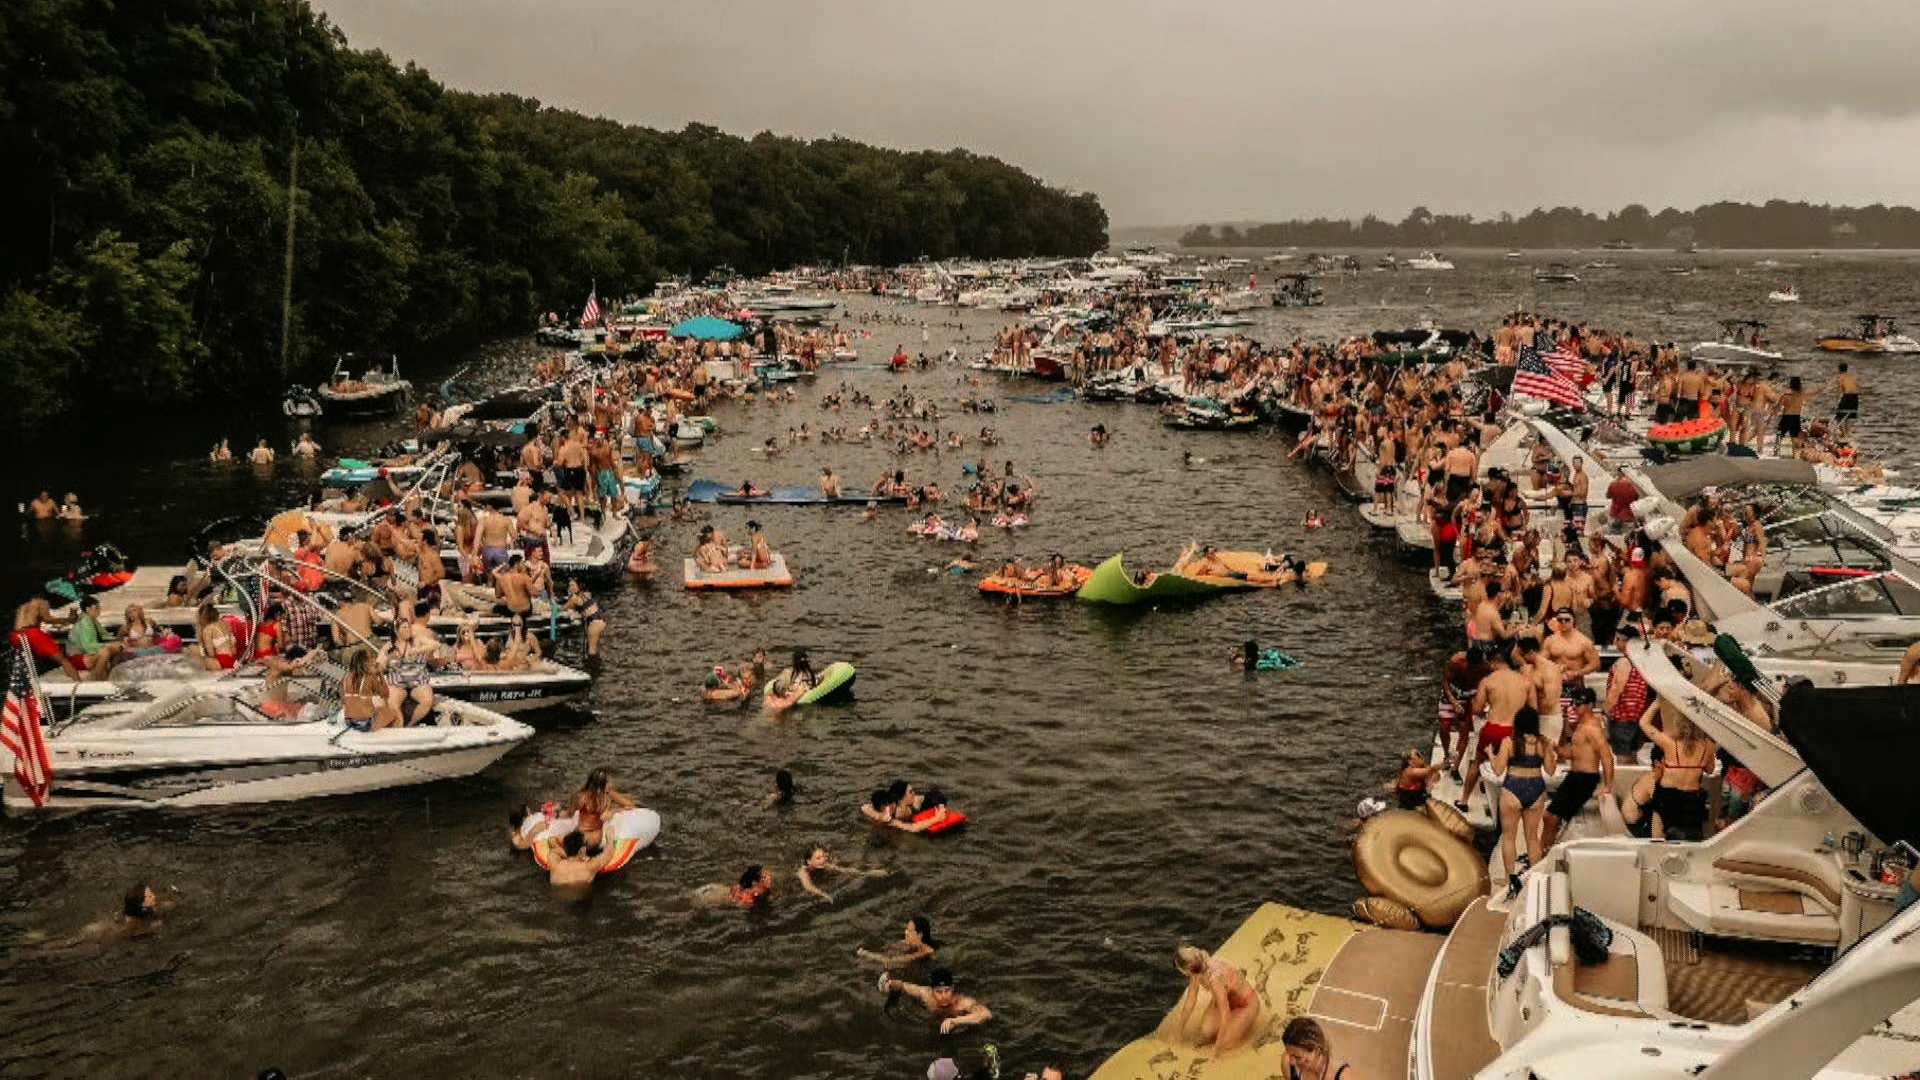 More Than 100 Boaters Sickened After Fourth Of July Event At Minnesota Lake